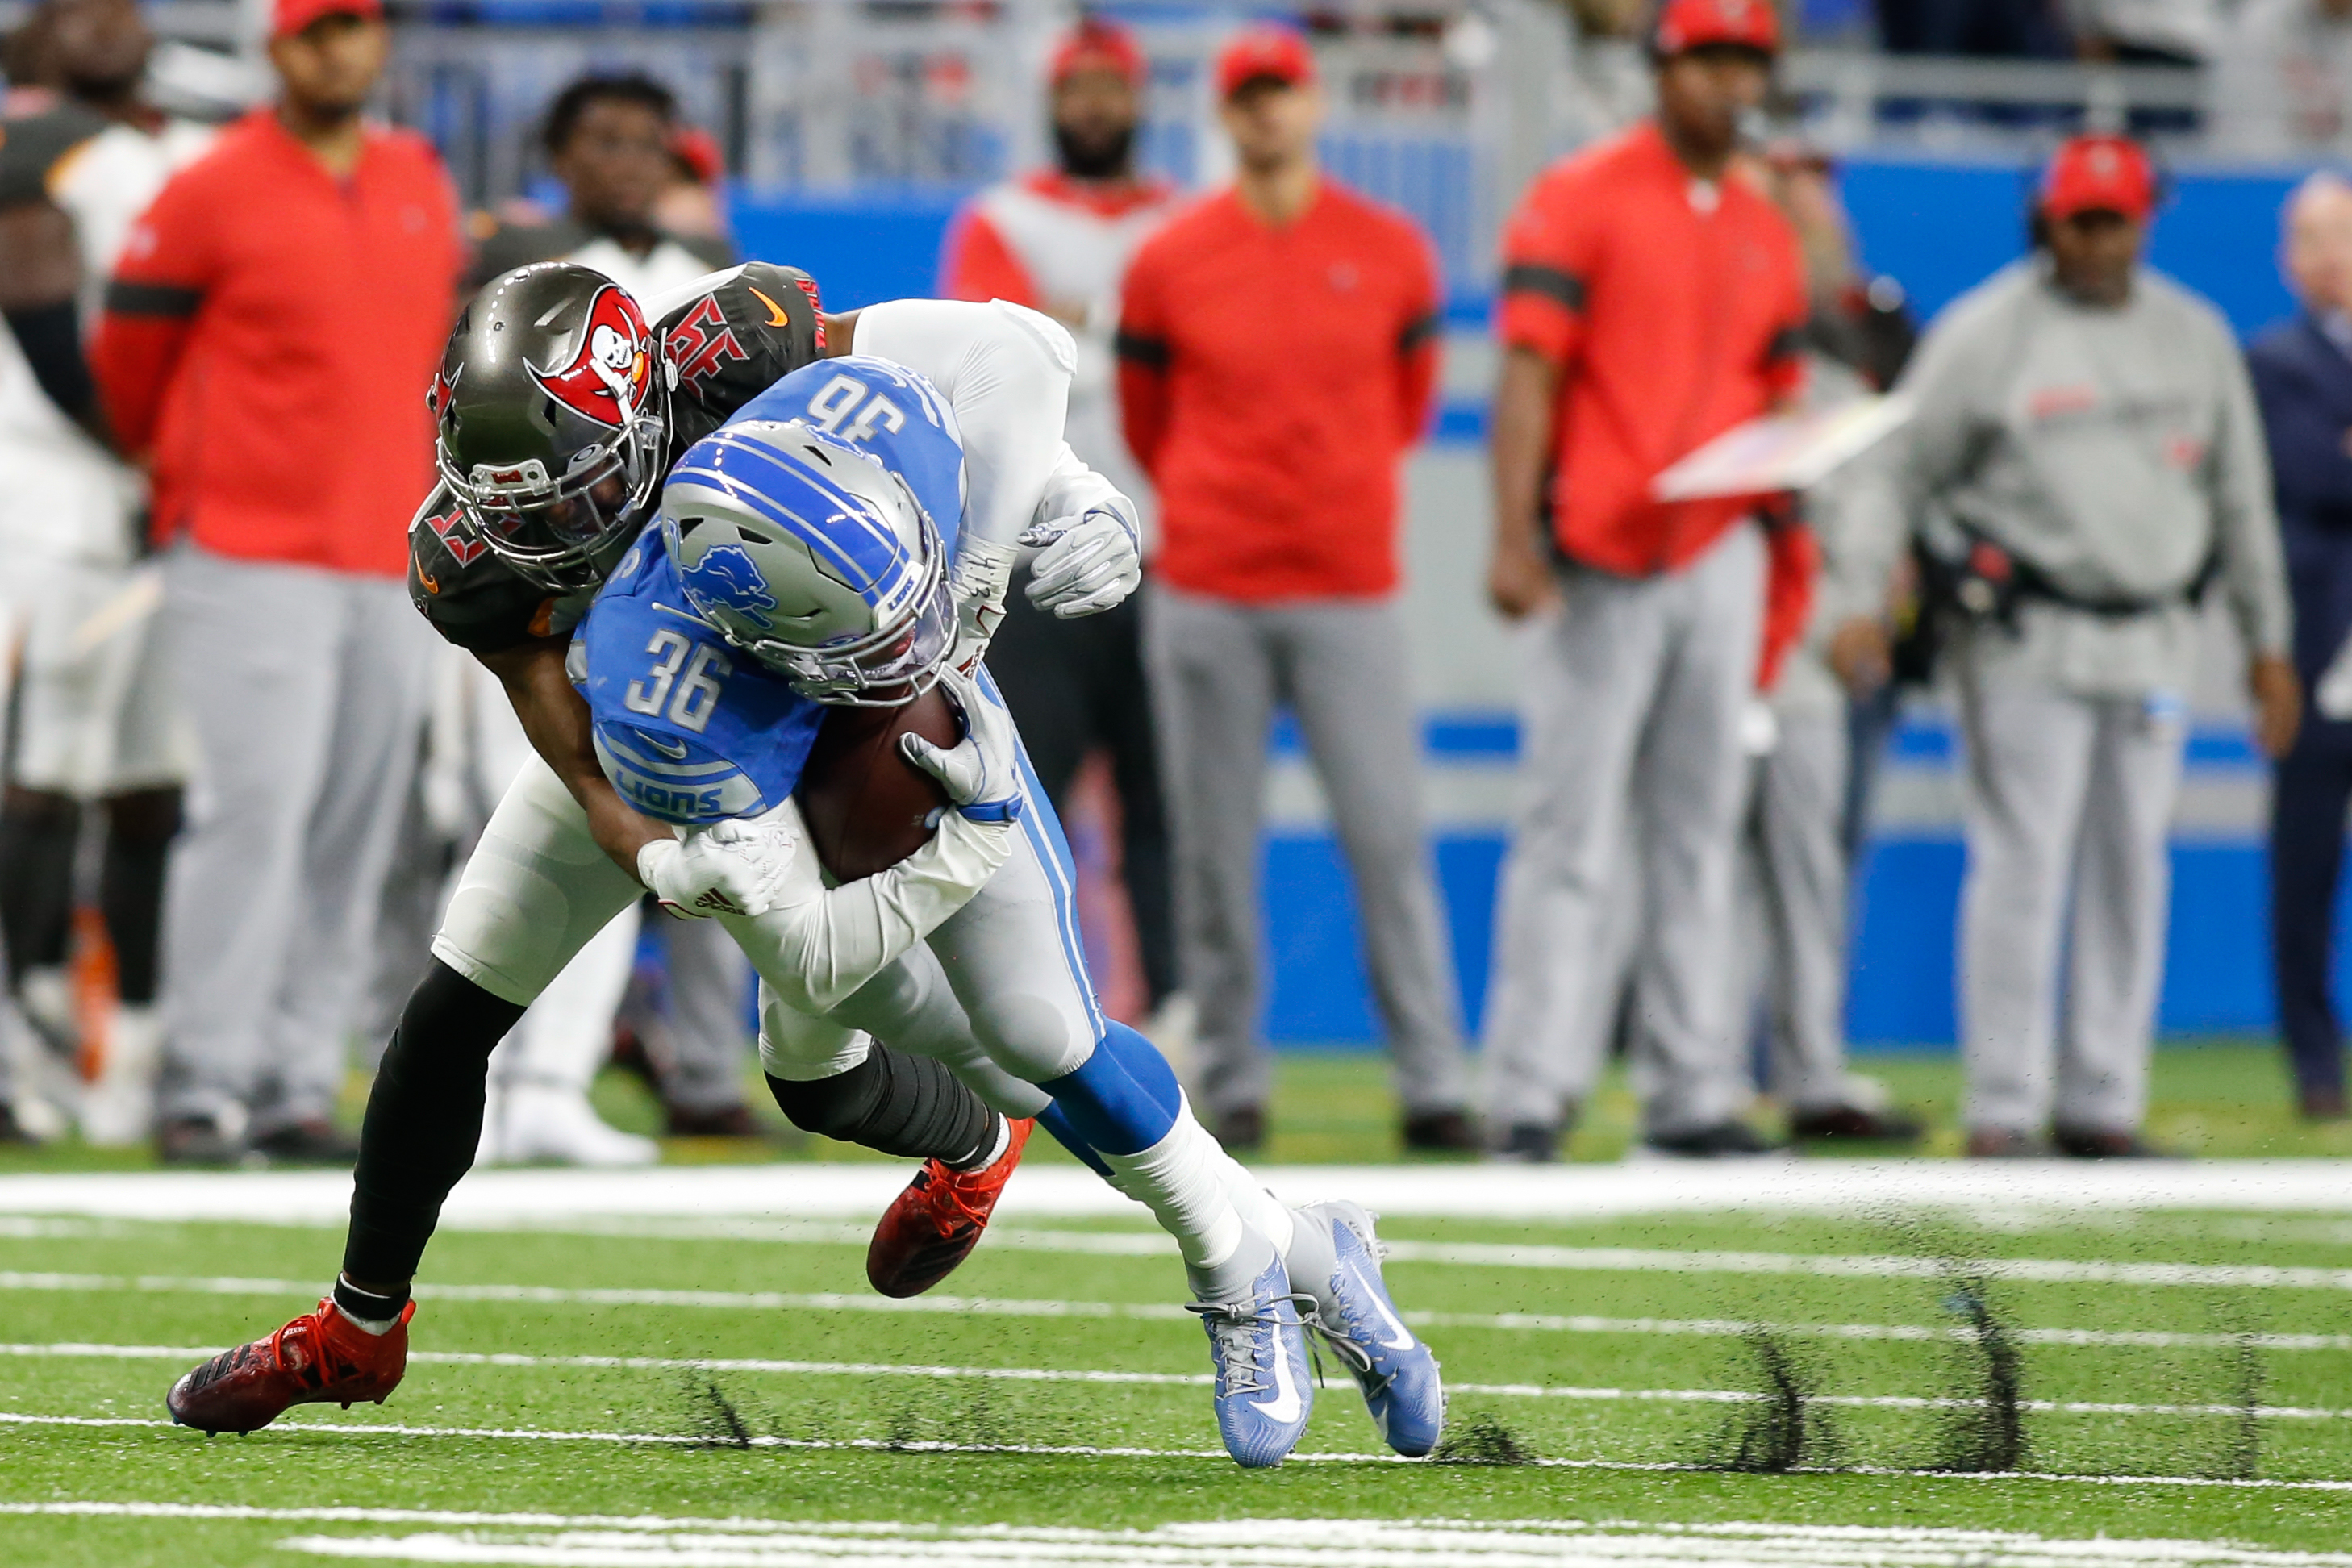 NFL: DEC 15 Buccaneers at Lions